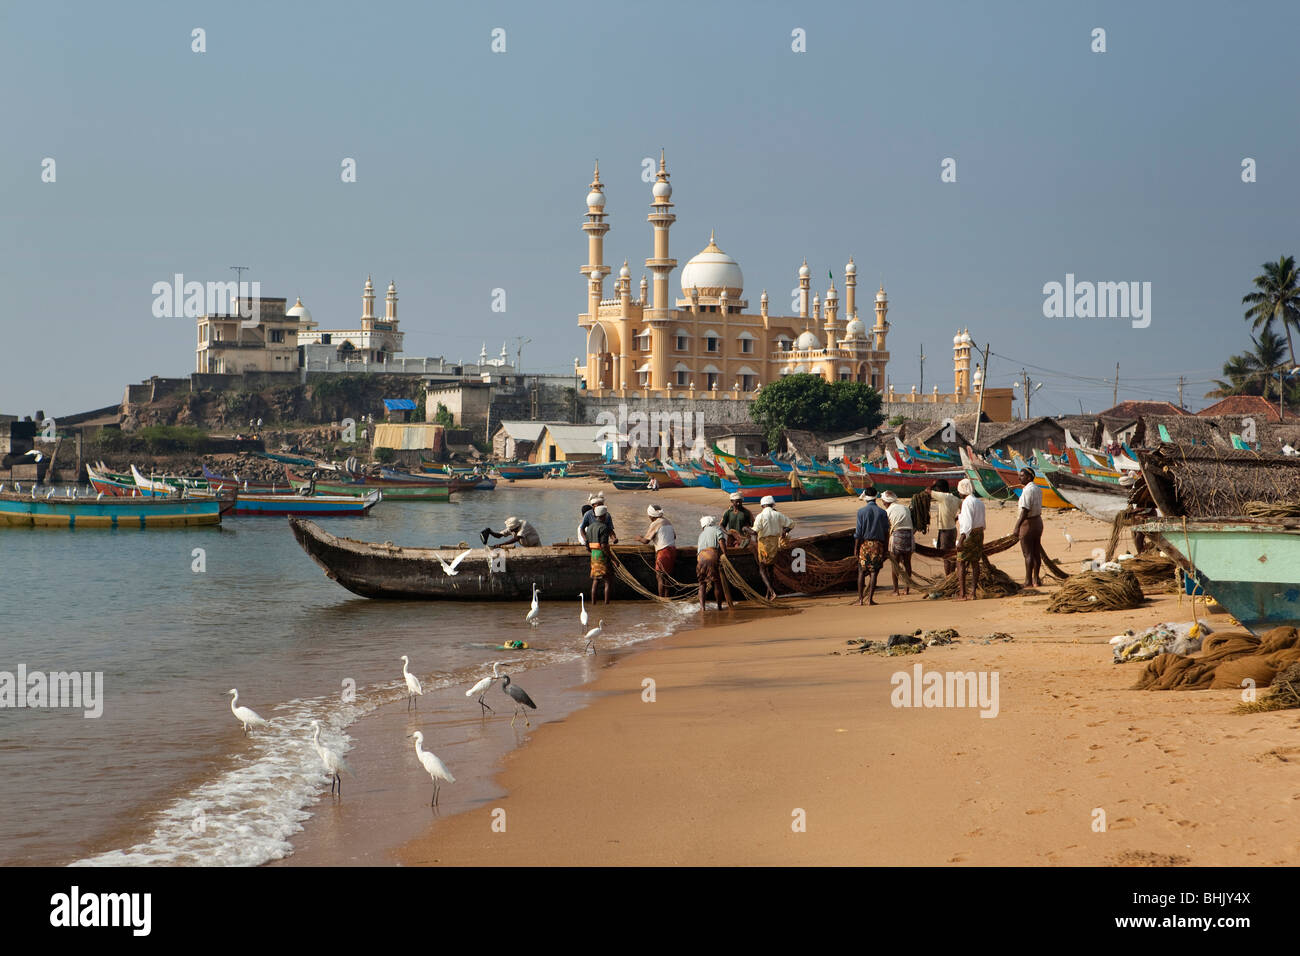 India, Kerala, Kovalam, Vizhinjam village fishermen unloading fishing boats on beach in front of mosque - Stock Image